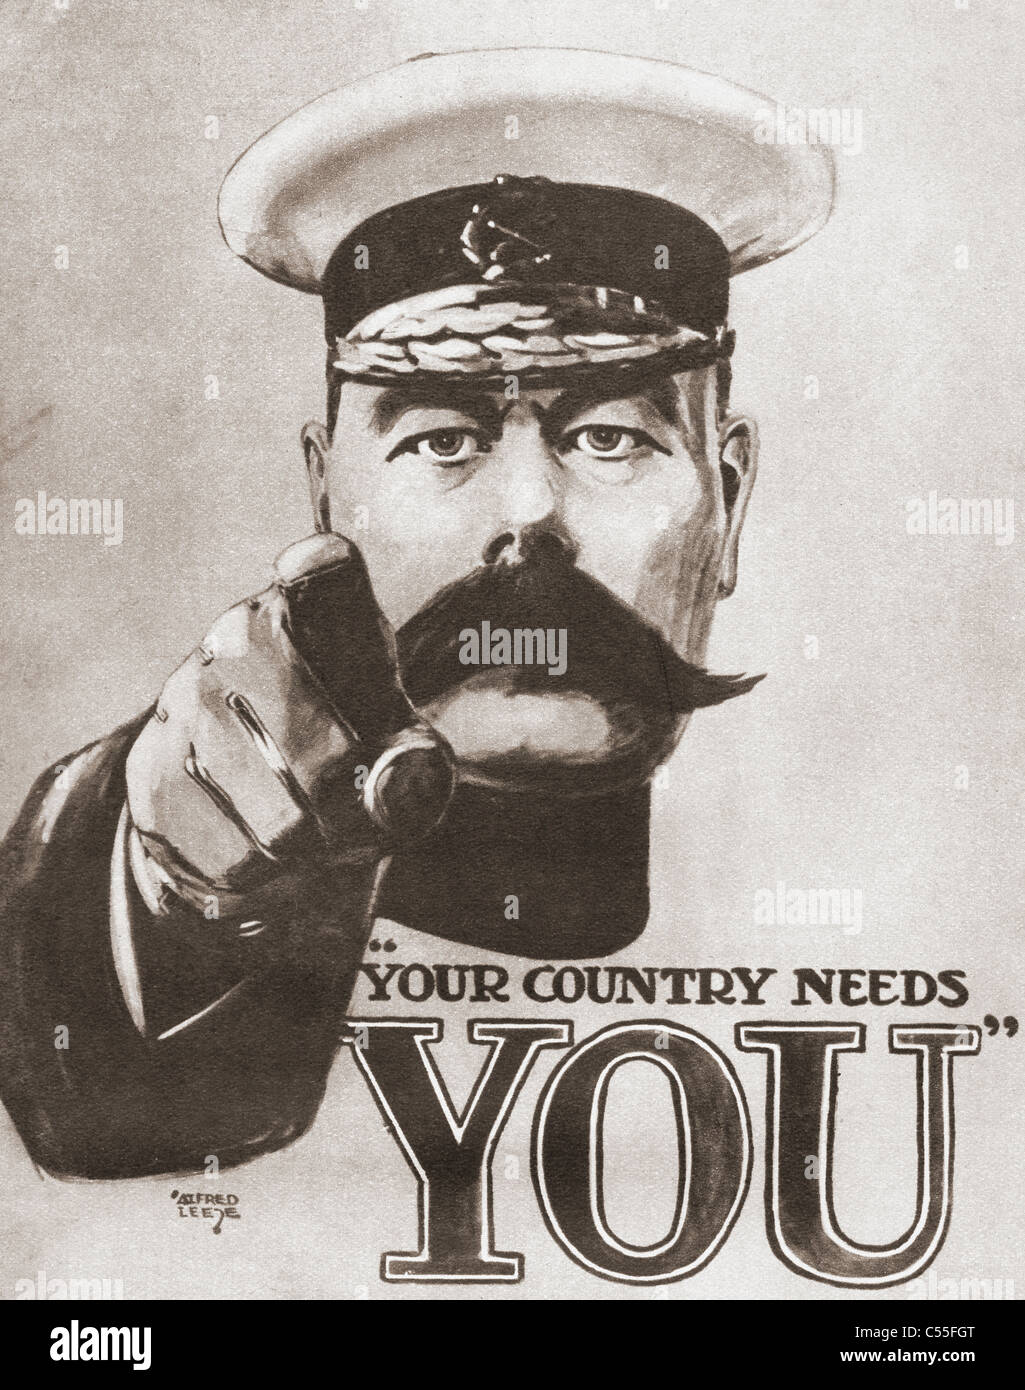 The 1914 British Wartime Recruitment Poster Depicting Lord Kitchener With Words Your Country Needs